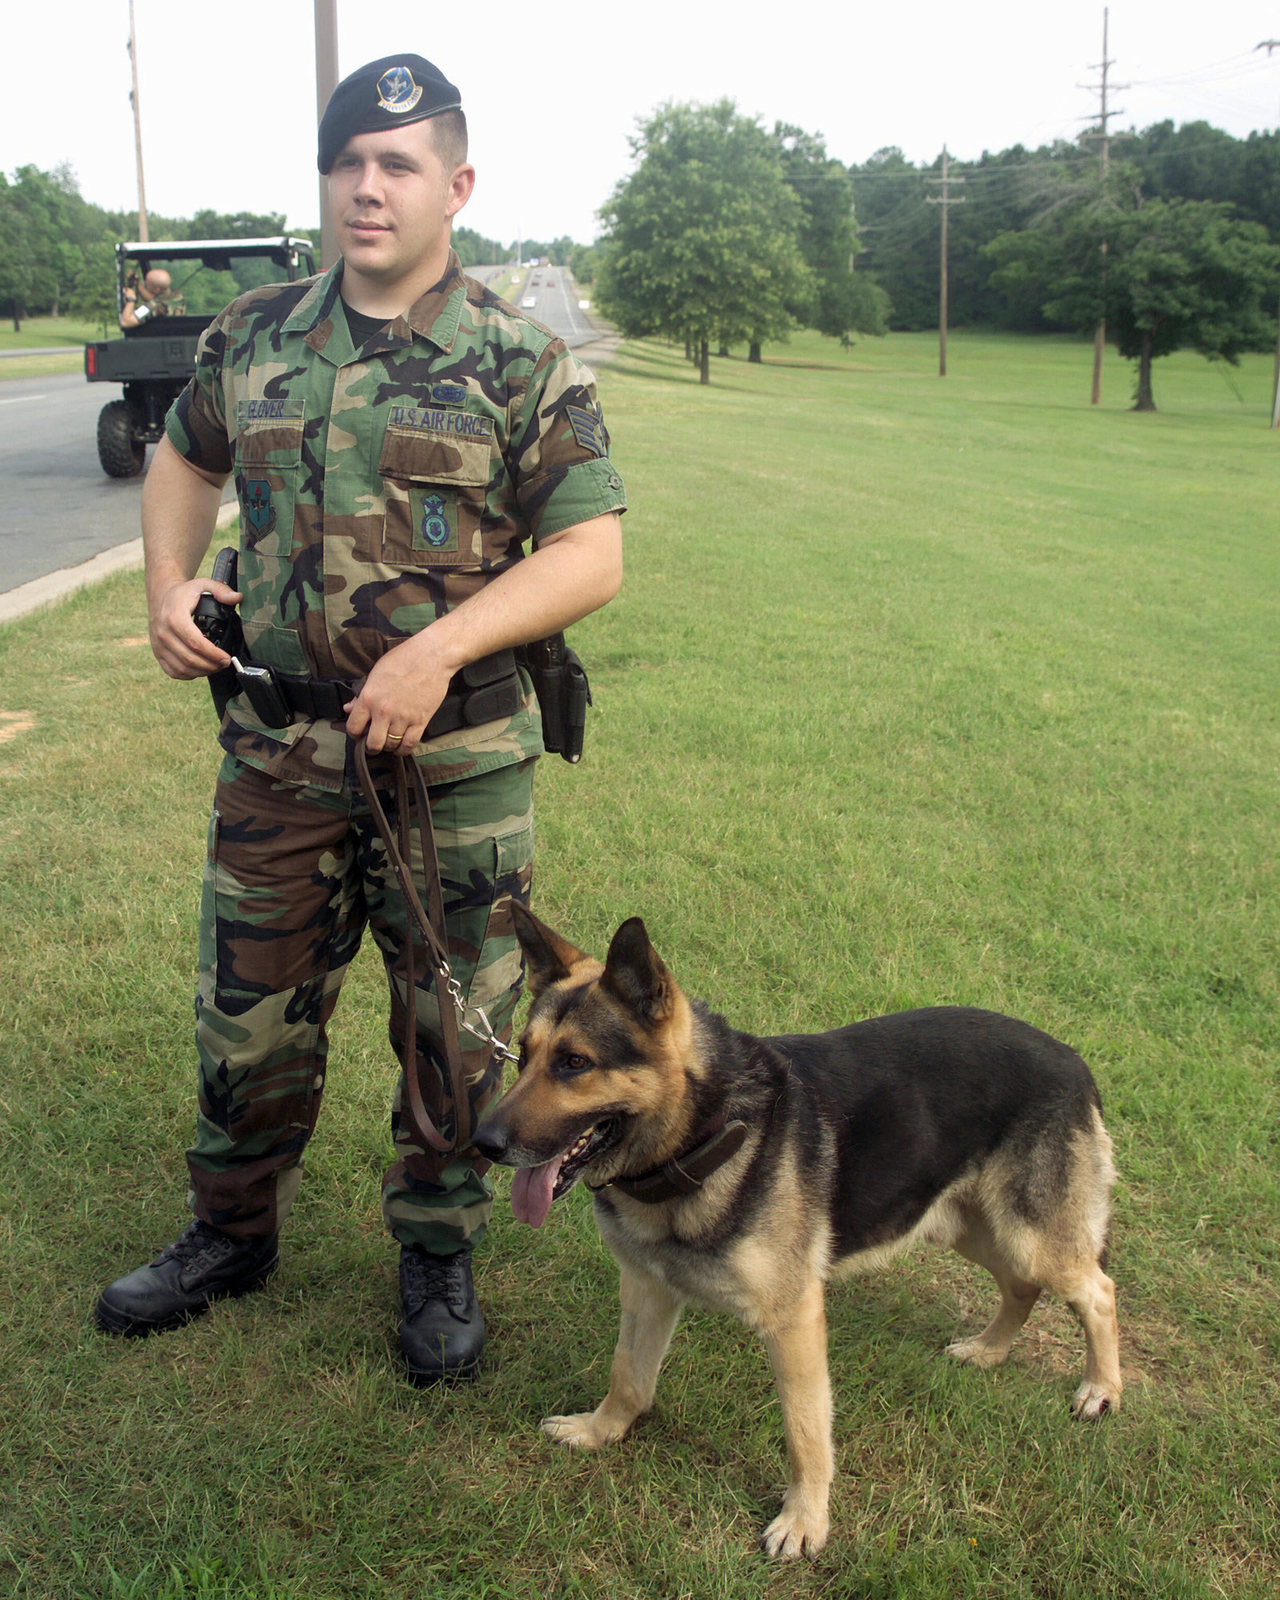 At the front gate of Little Rock Air Force Base (AFB), US Air Force (USAF) STAFF Sergeant (SSGT) Troy Glover, 314th Security Forces Squadron (SFS), waits, with Benny his K-9 Partner, to check cars for unauthorized items during the 2004 Heroes of the Heartland Air Show